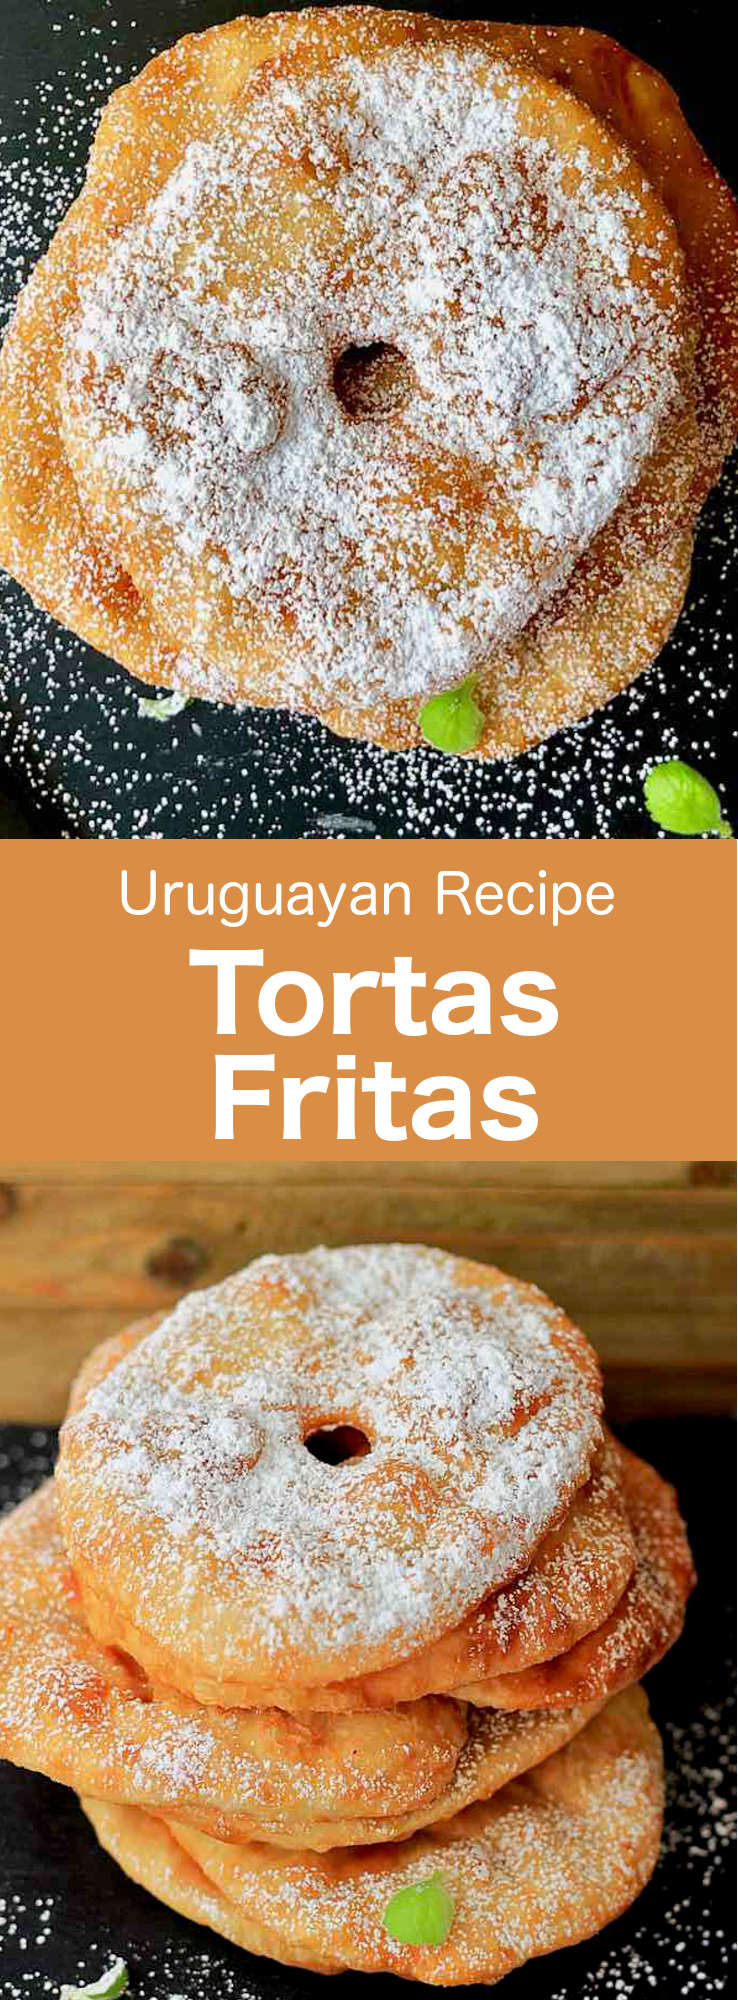 Tortas fritas are popular fried breads in Uruguay and Argentina where it is traditional to savor them on a rainy afternoon with yerba mate tea. #UruguayanRecipe #UruguayanFood #UruguayanCuisine #ArgentinianRecipe #ArgentinianFood #ArgentinianCuisine #LatinCuisine #LatinFood #LatinRecipe #WorldCuisine #196flavors